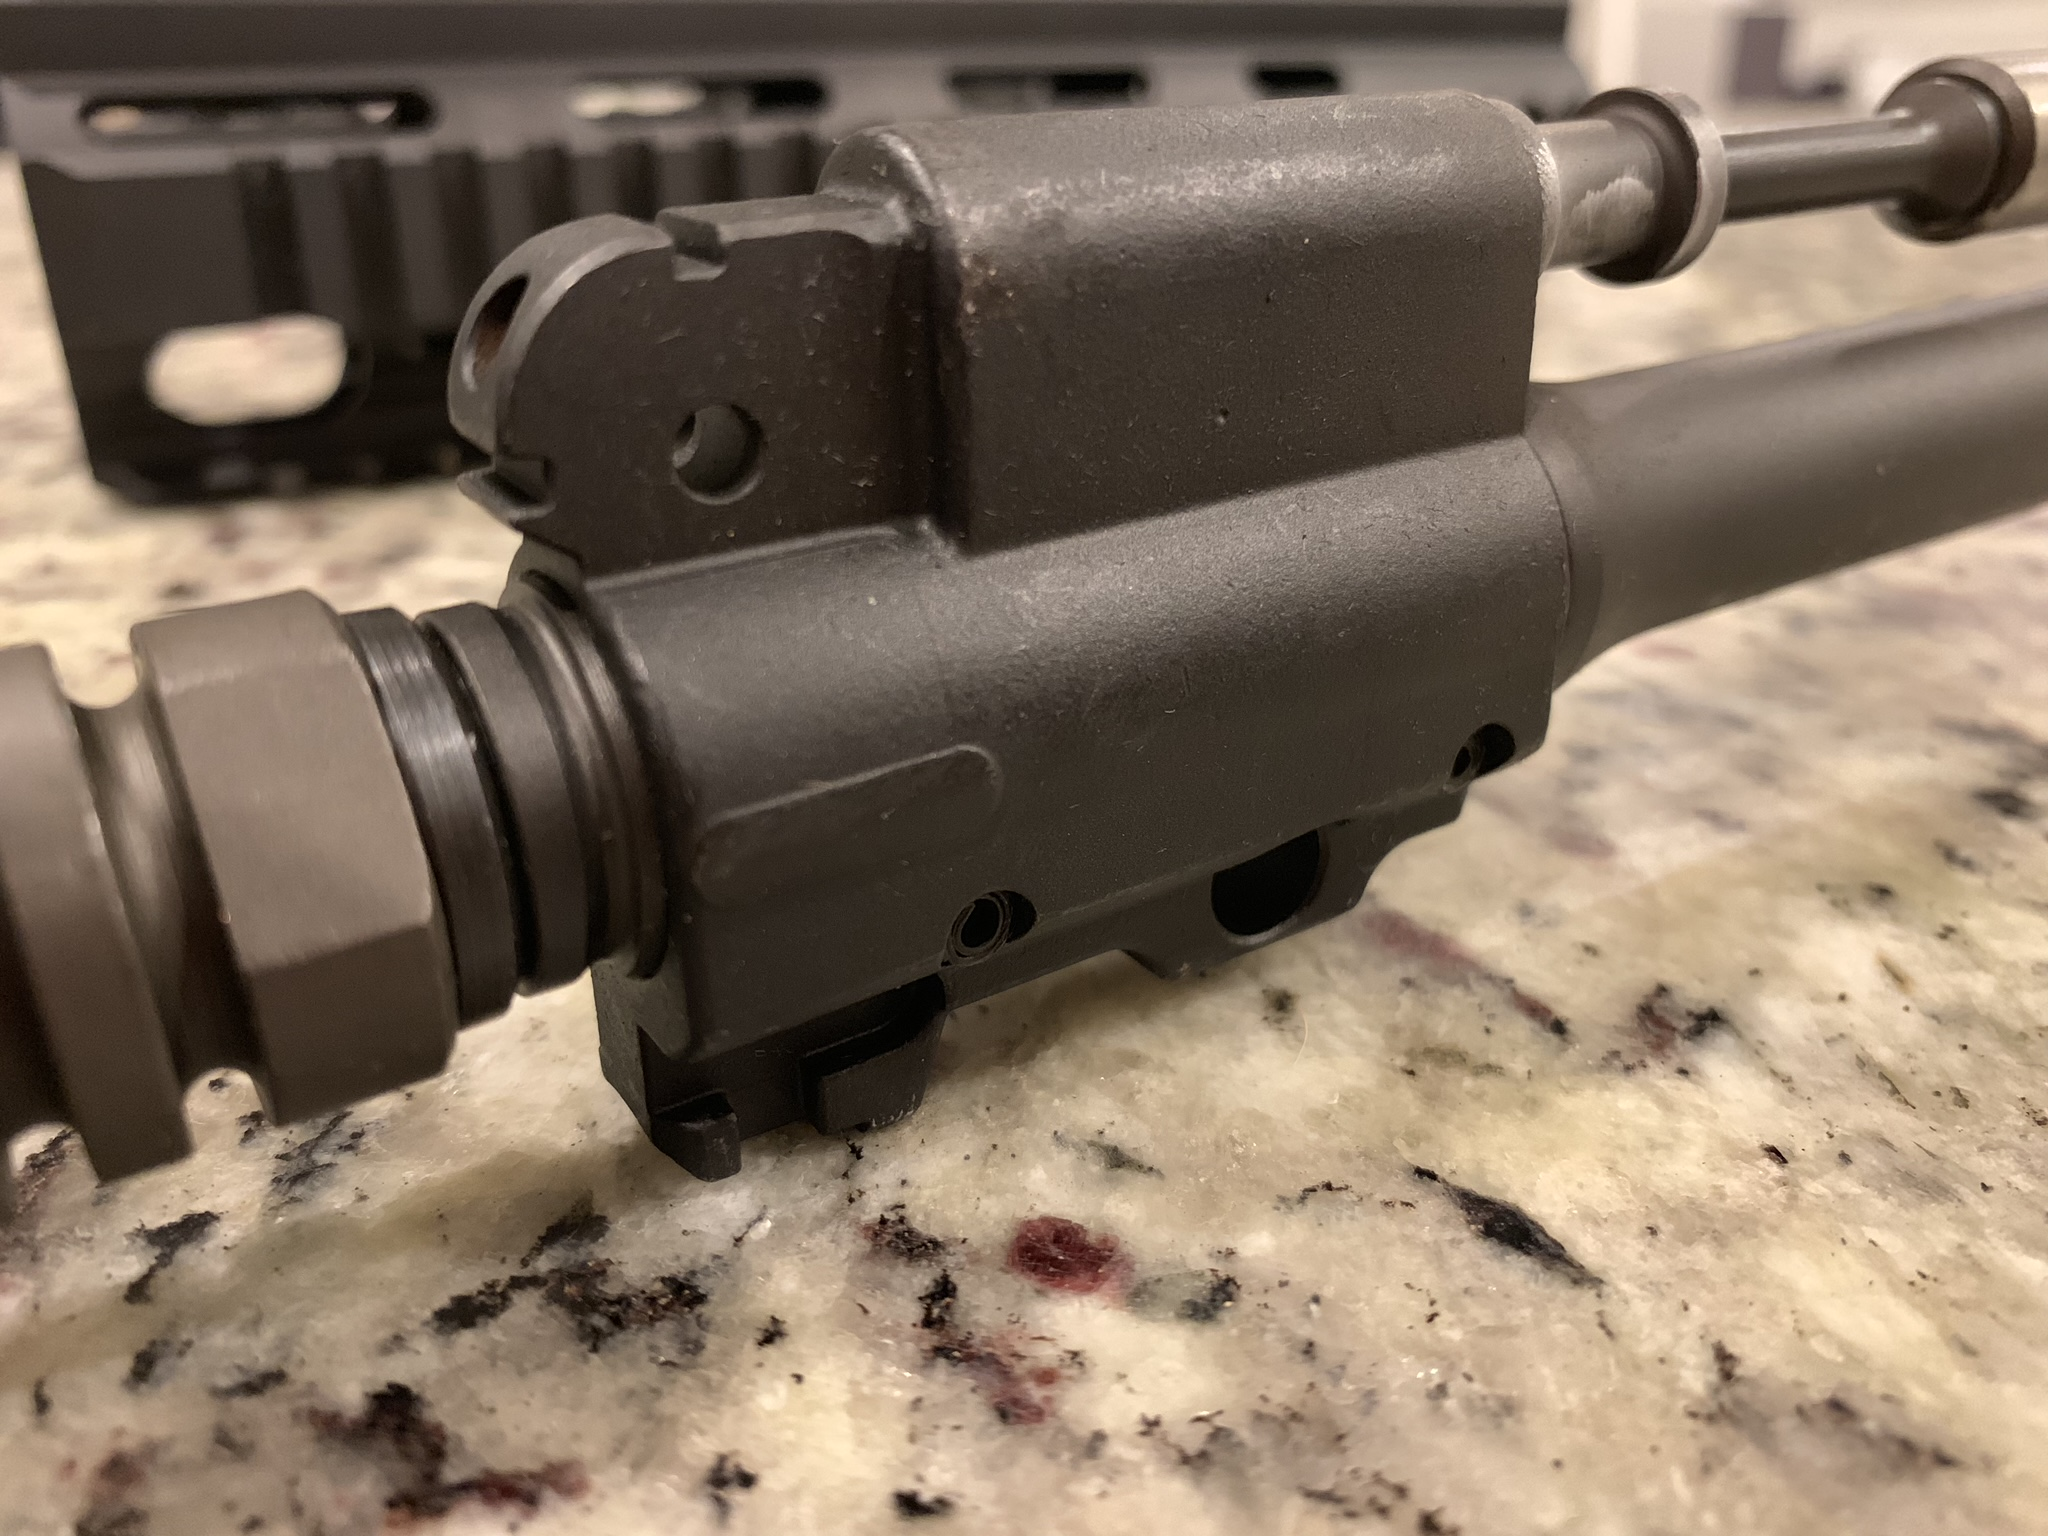 HK416 Owners Picture Thread (genuine HK416's only please)-img_0009.jpeg